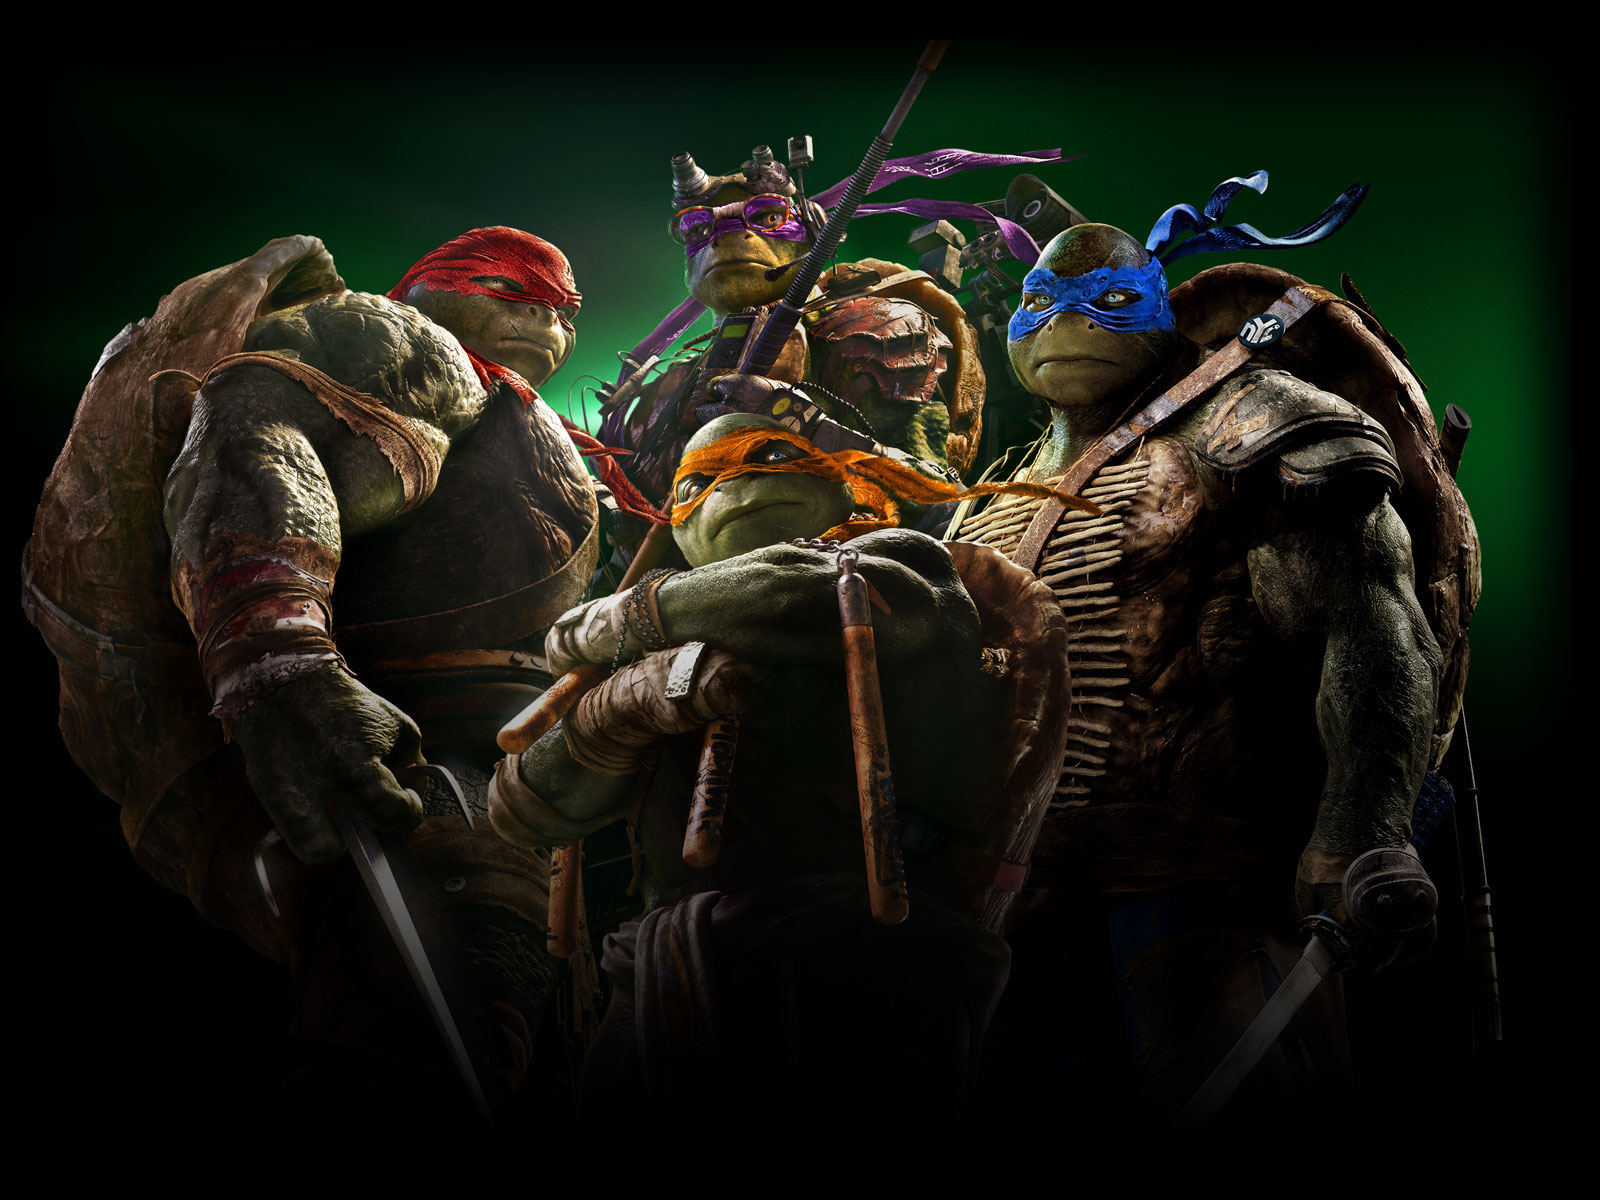 Ninja Turtles Movie Wallpaper